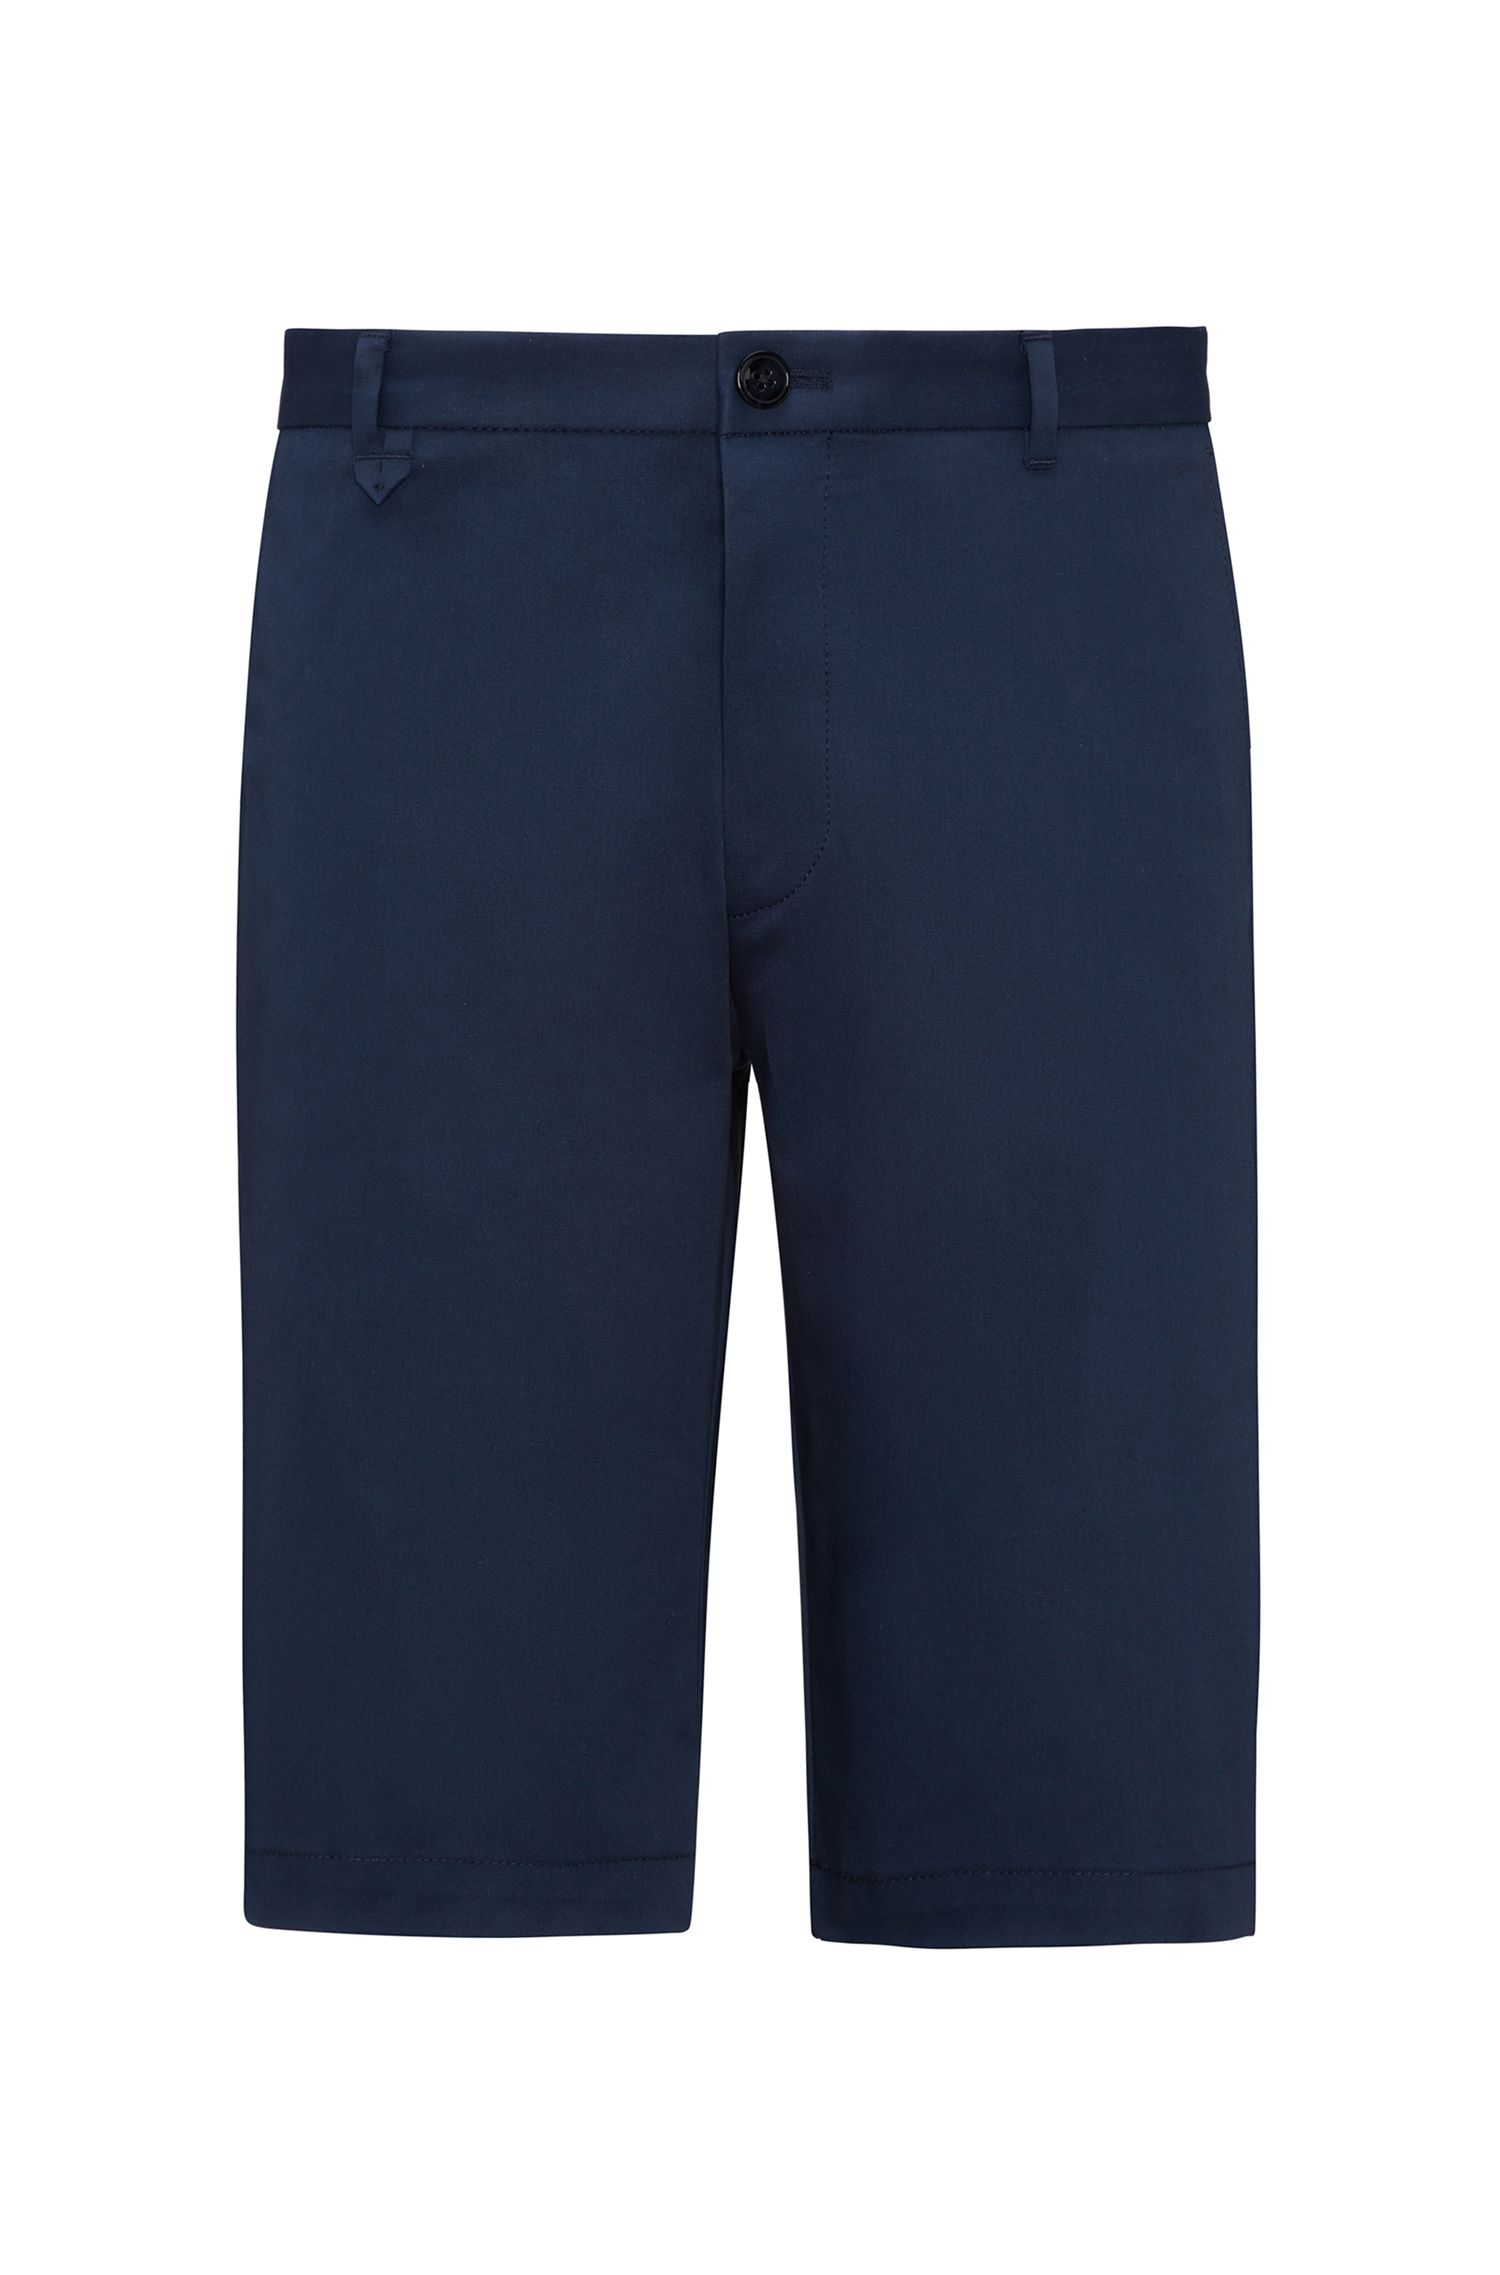 Flat-fronted shorts in stretch micro gabardine